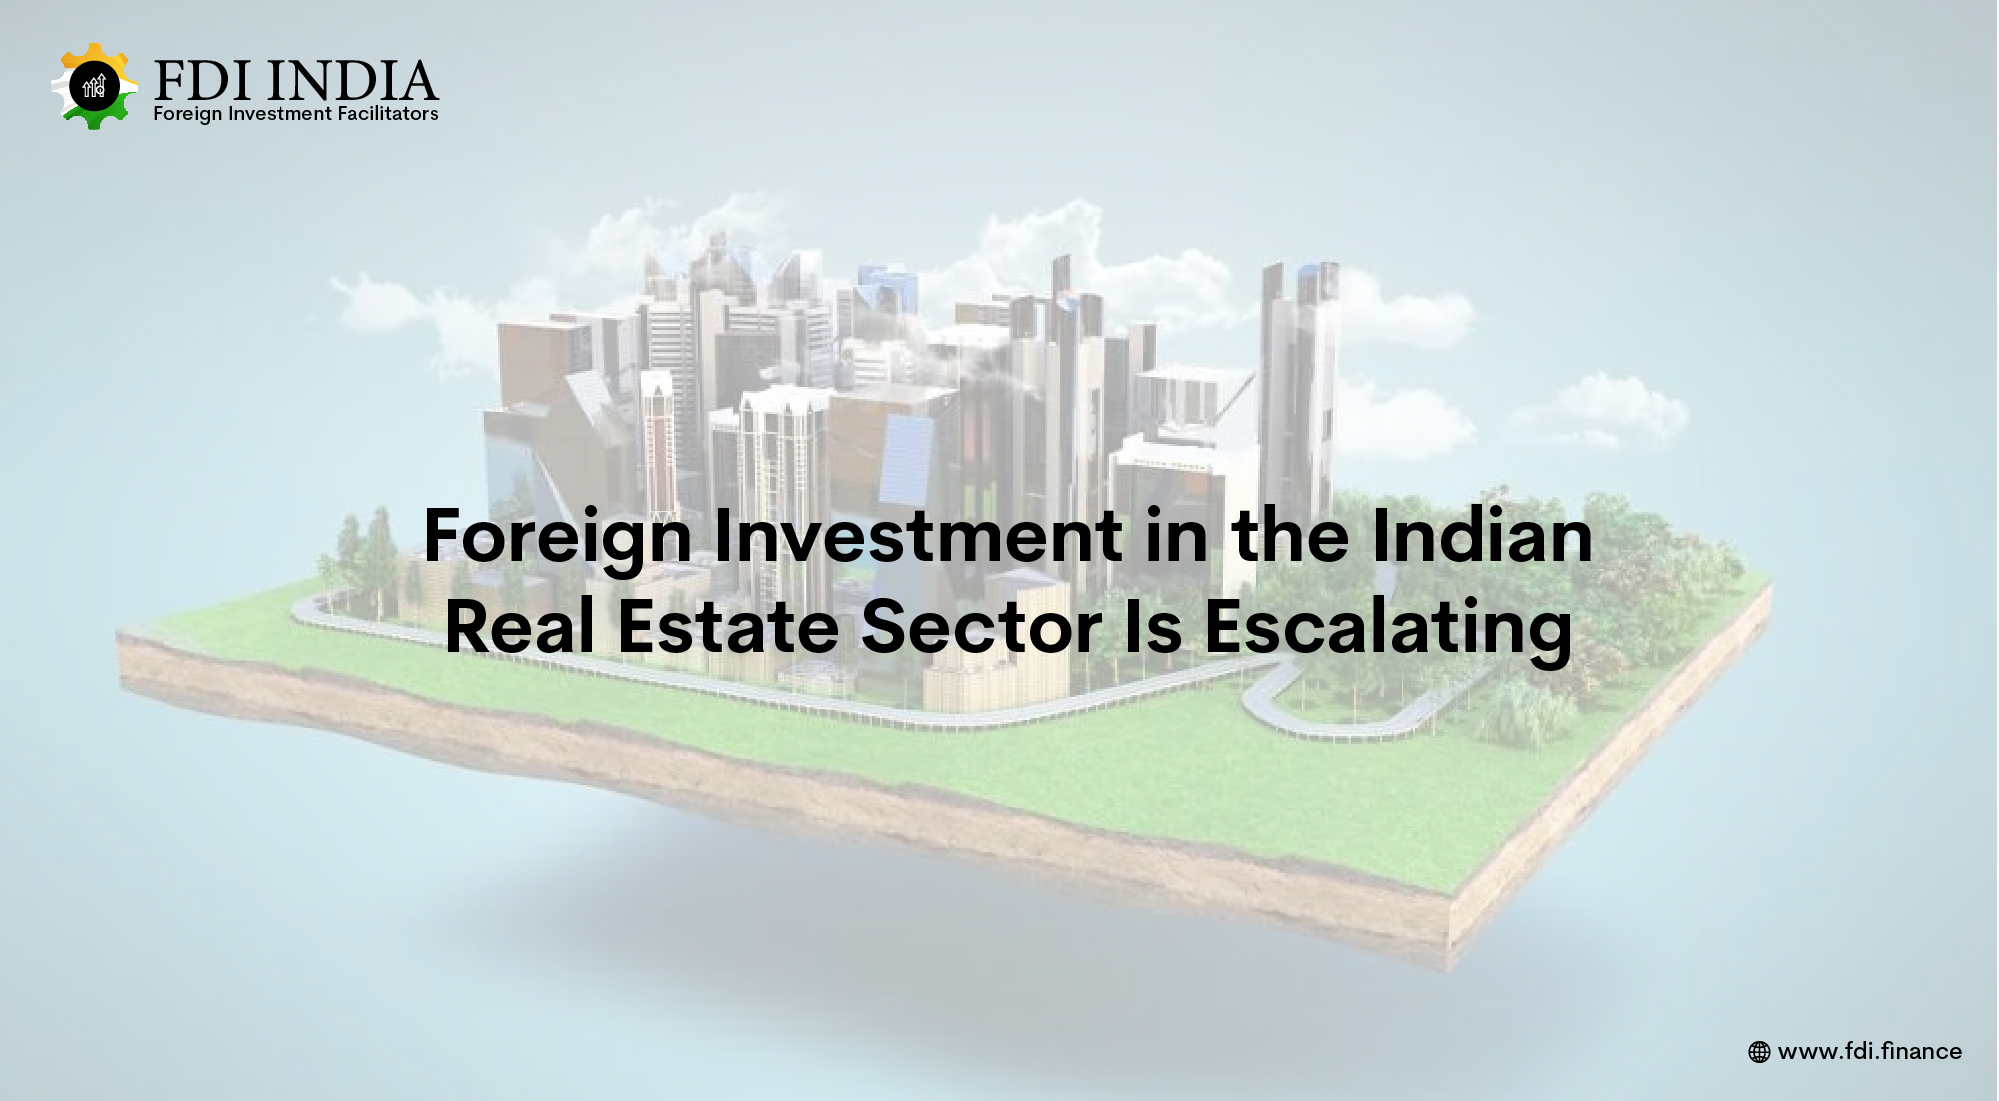 Foreign Investment in the Indian Real Estate Sector Is Escalating